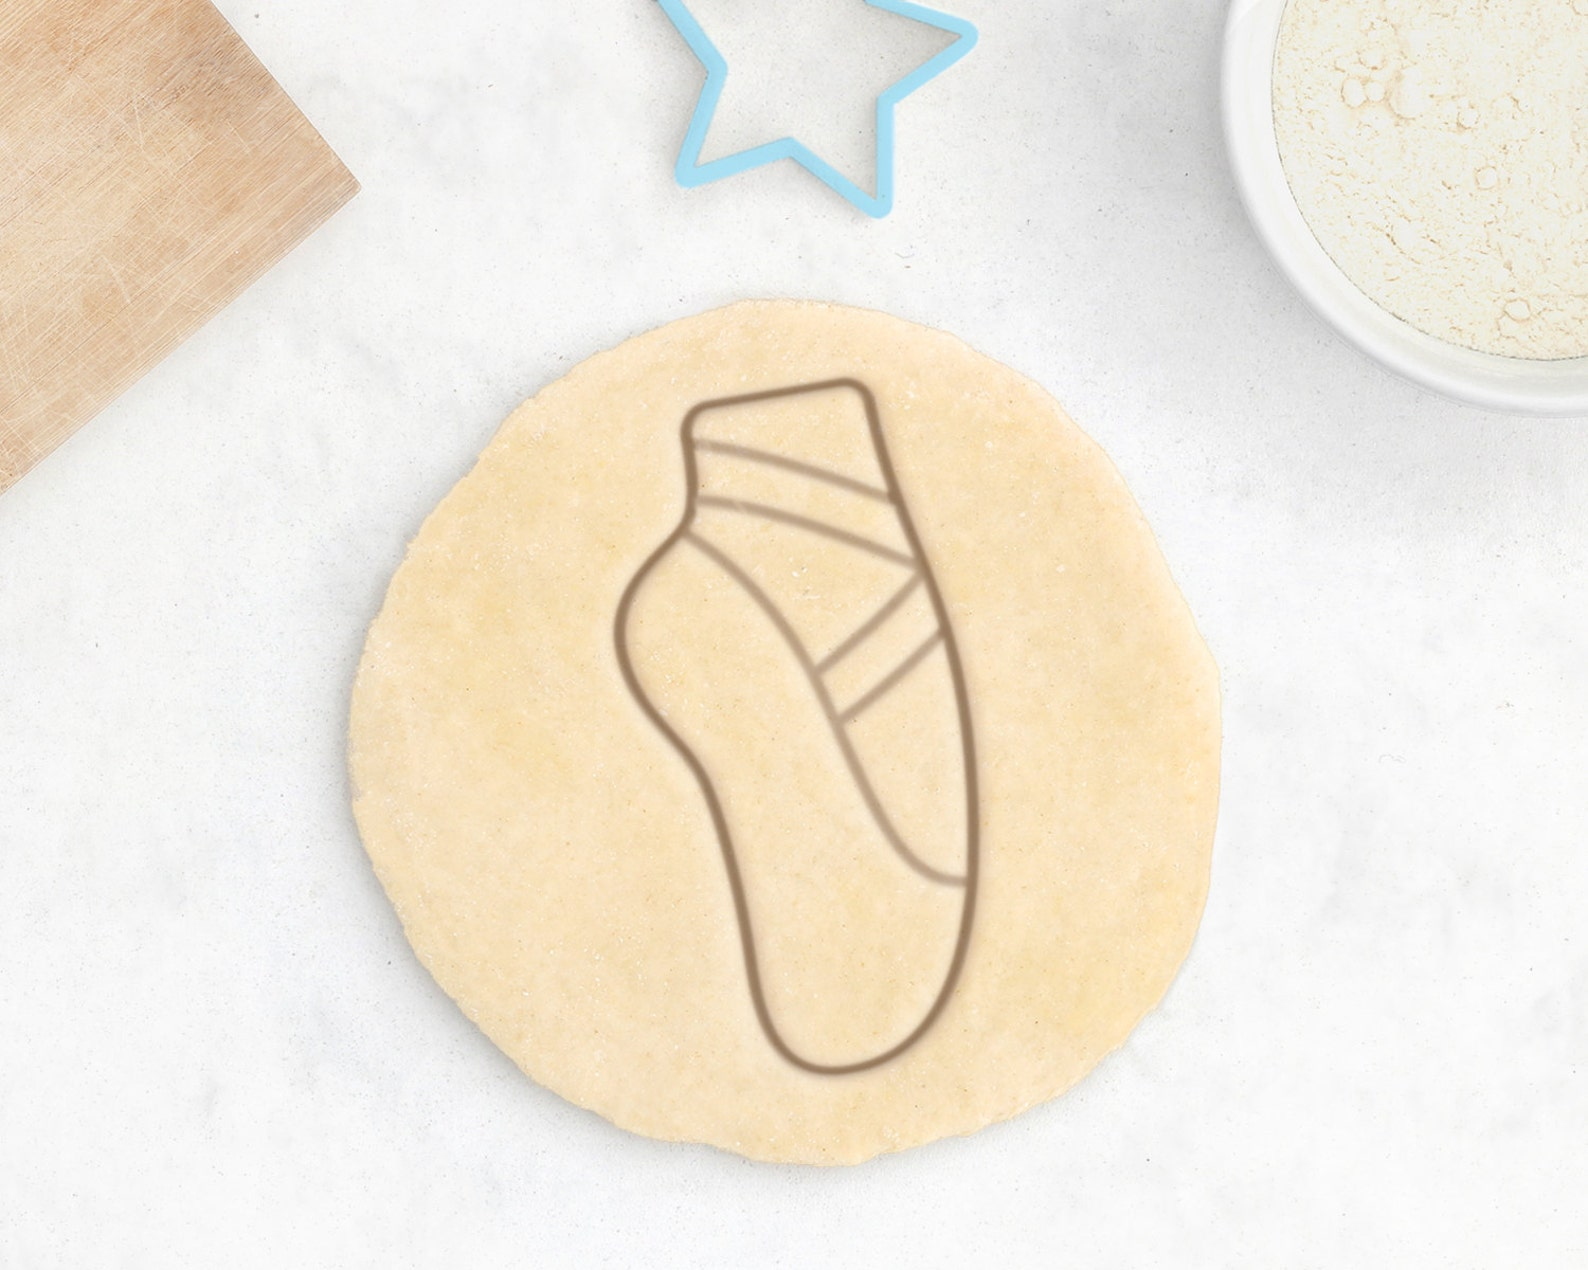 ballet slipper cookie cutter – ballerina cookie cutter ballet gift tutu ballet cookie cutter cookies fairy princess cookie cutte